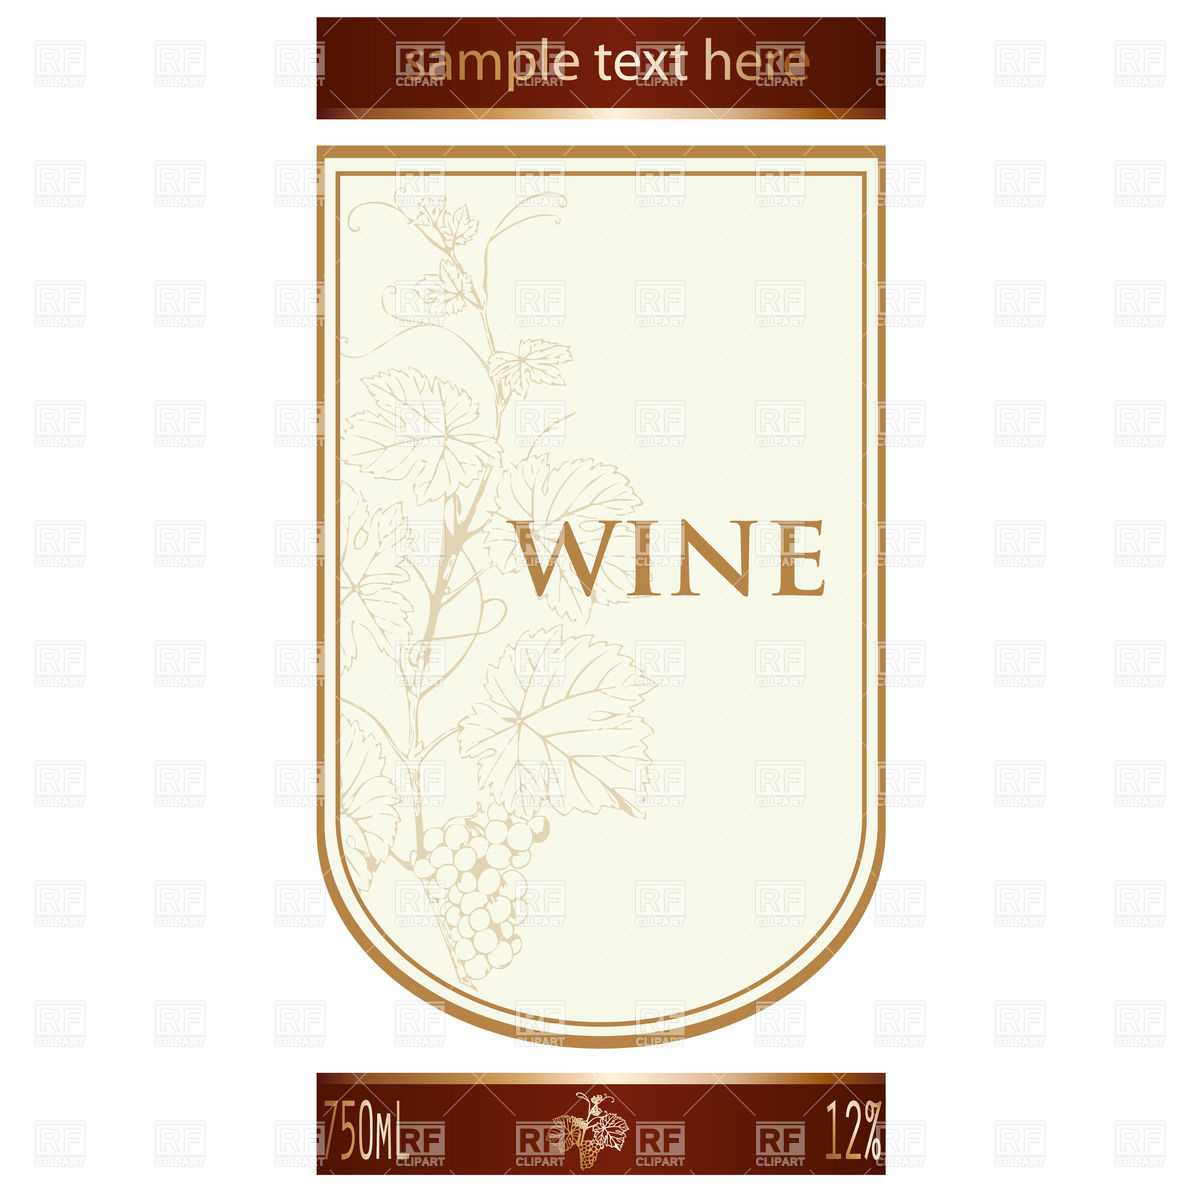 002 Template Ideas Free Wine Label Remarkable Bottle Intended For Blank Wine Label Template